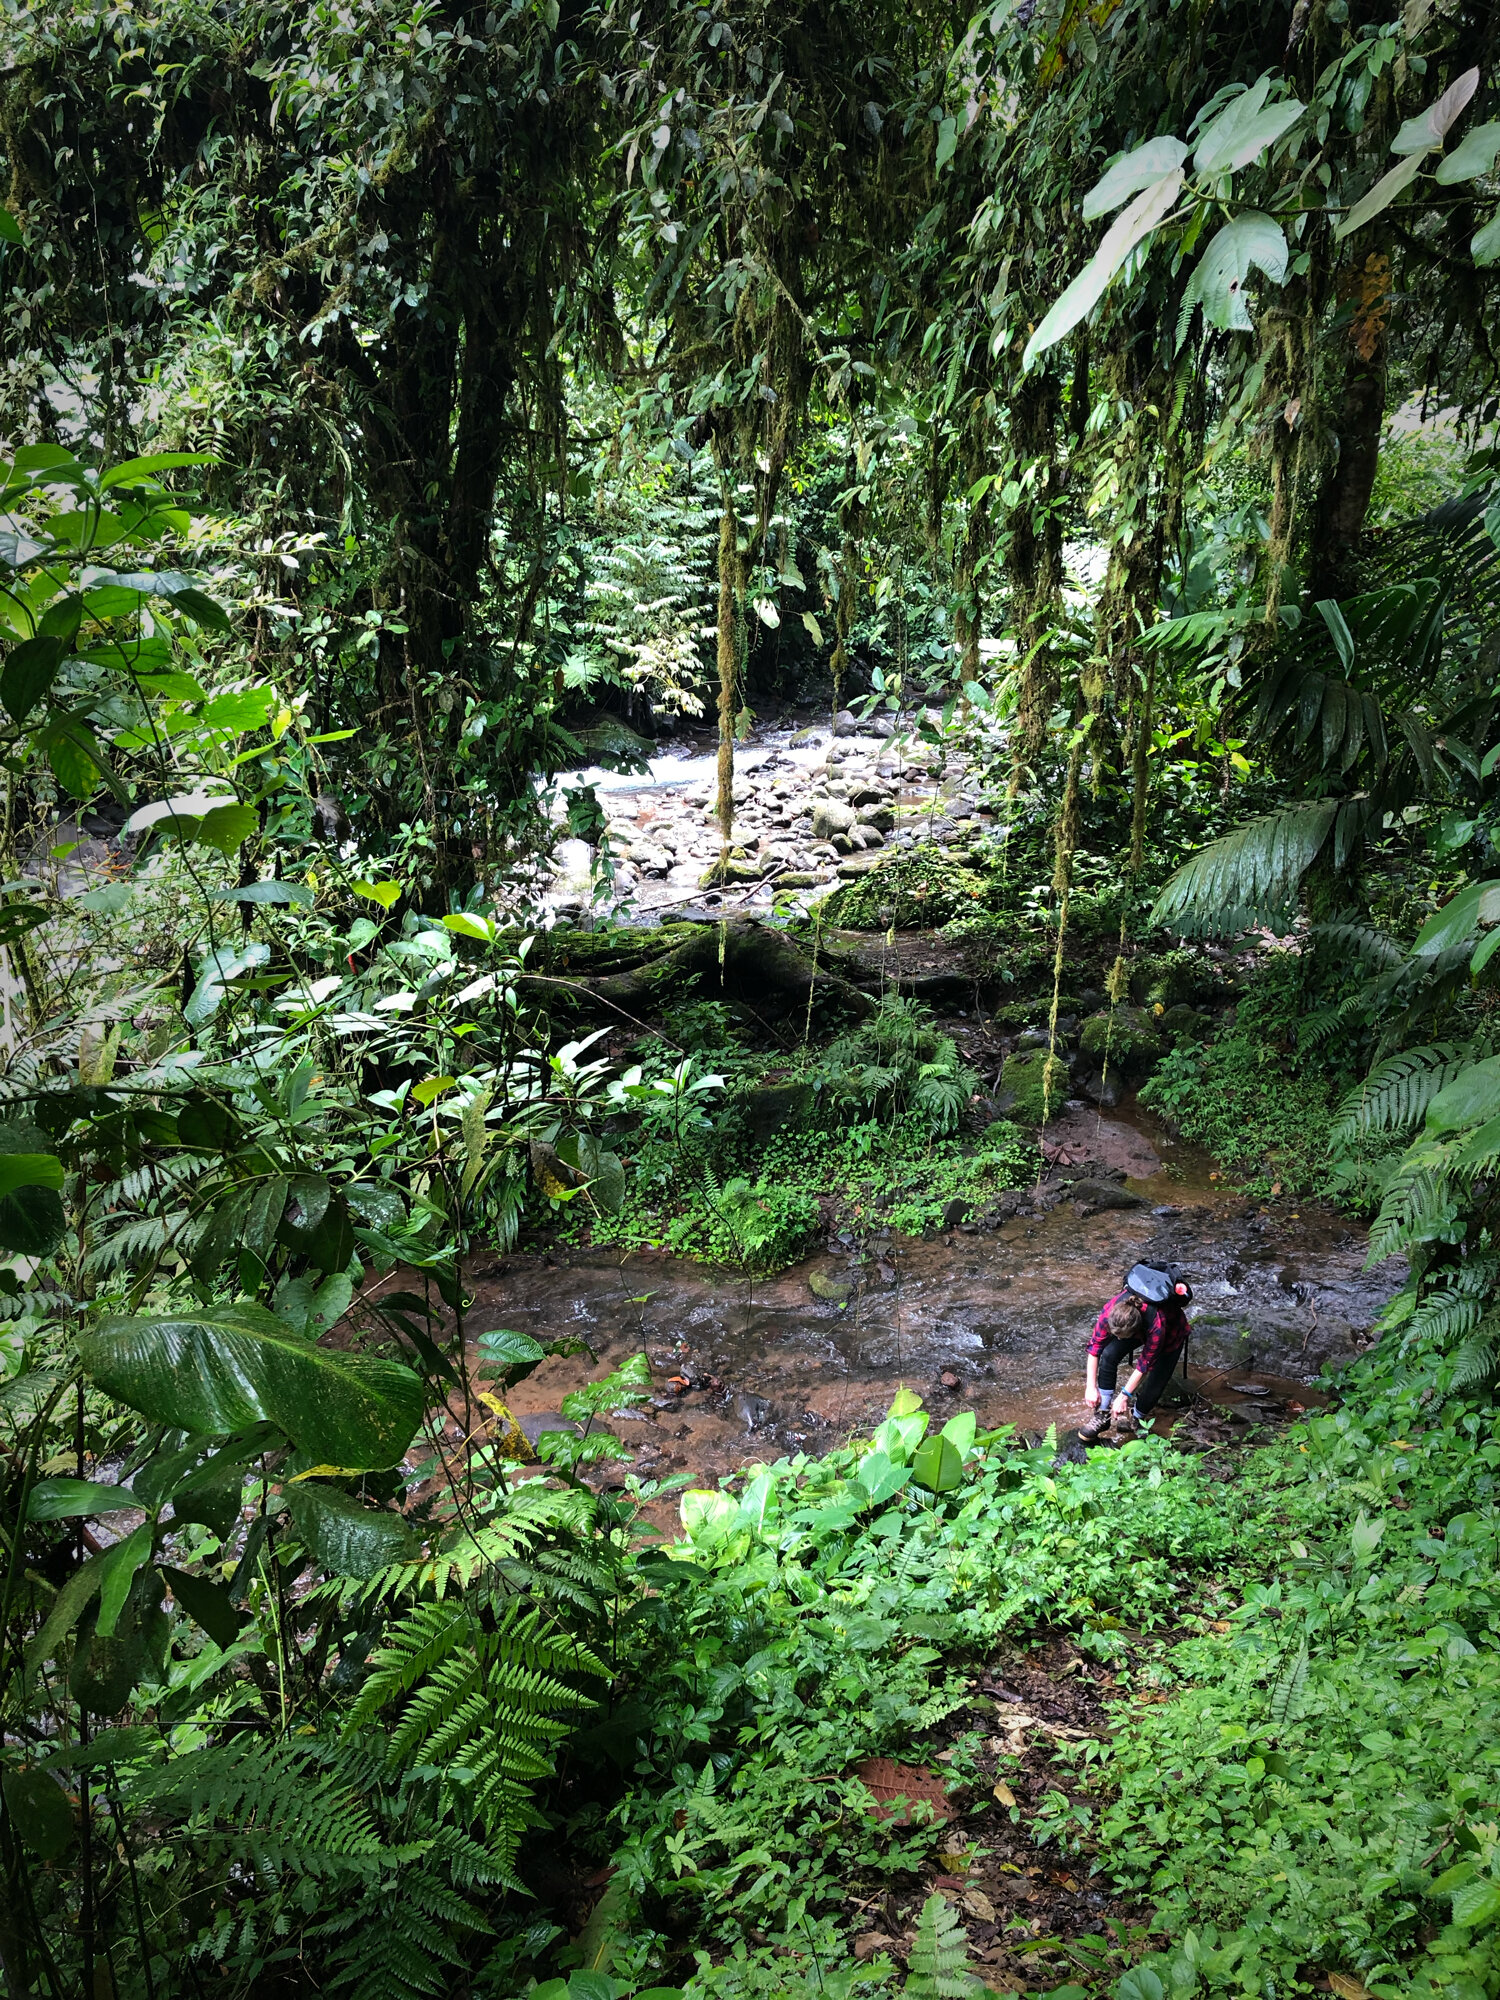 Explore private trails through the jungle and view hummingbirds, frogs, and butterflies in their element